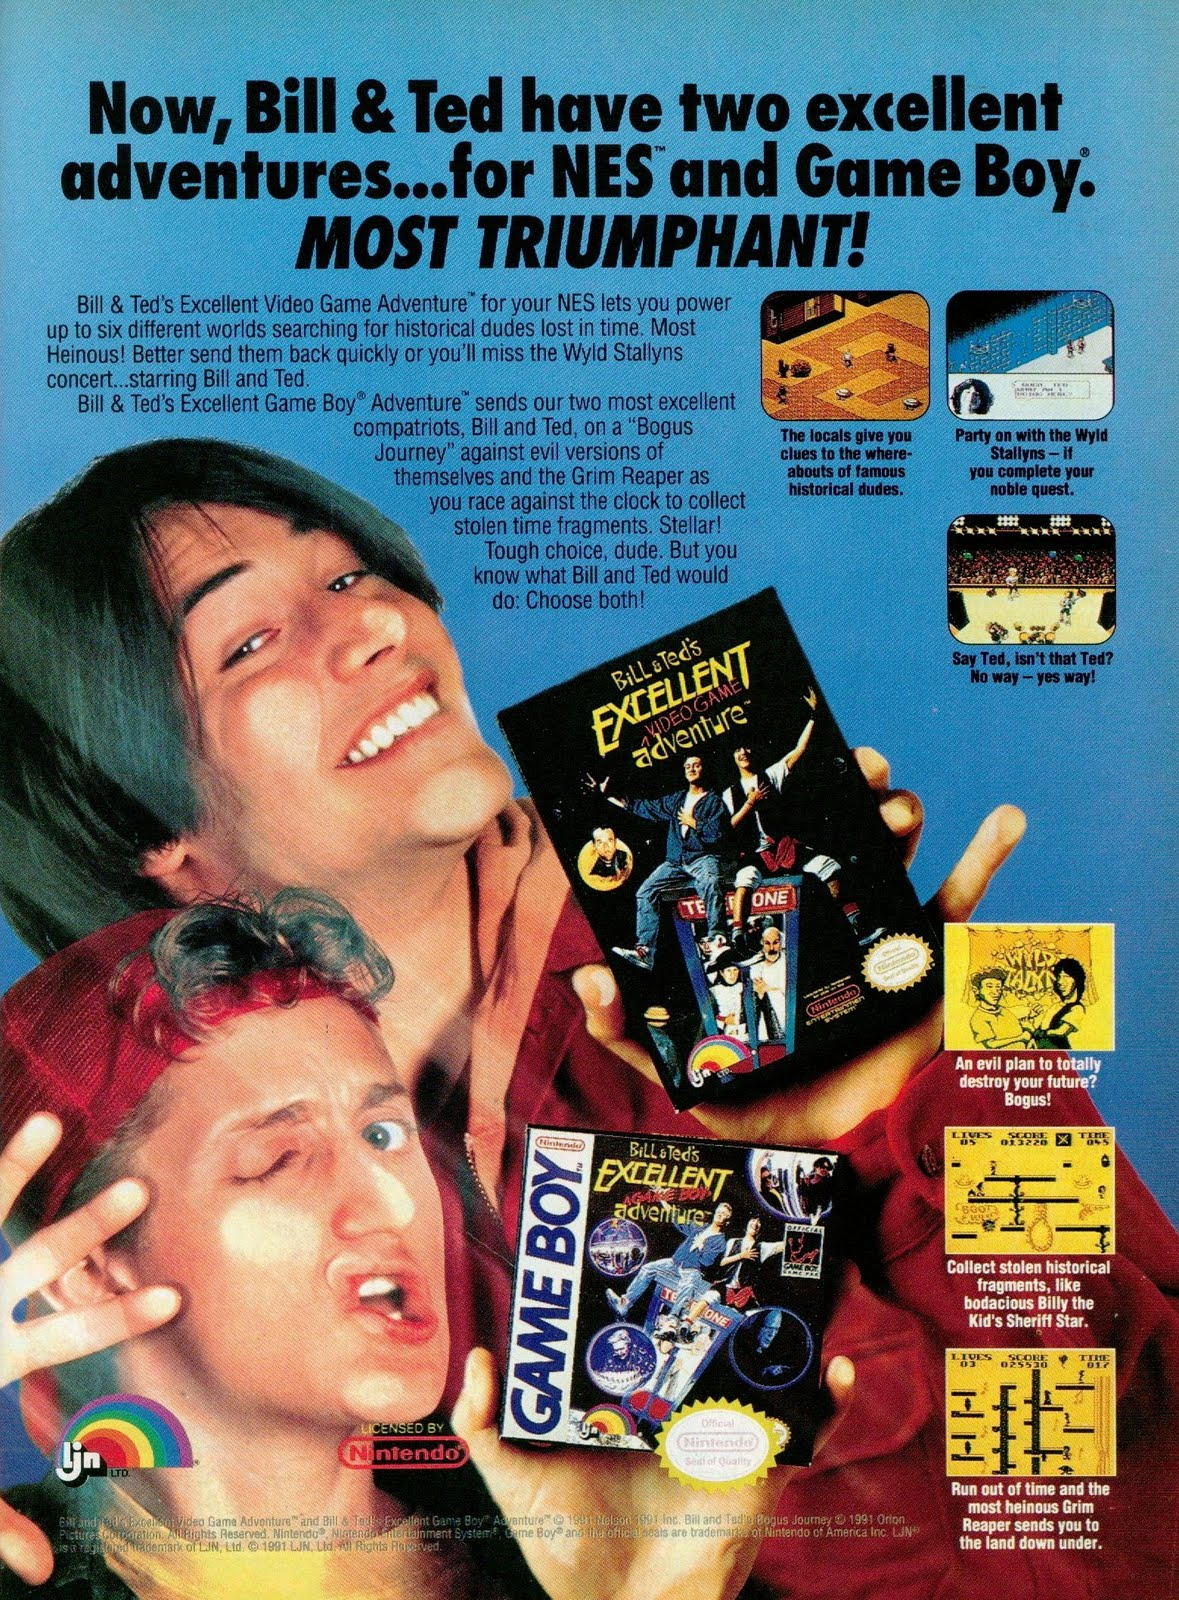 Goodies for Bill & Ted